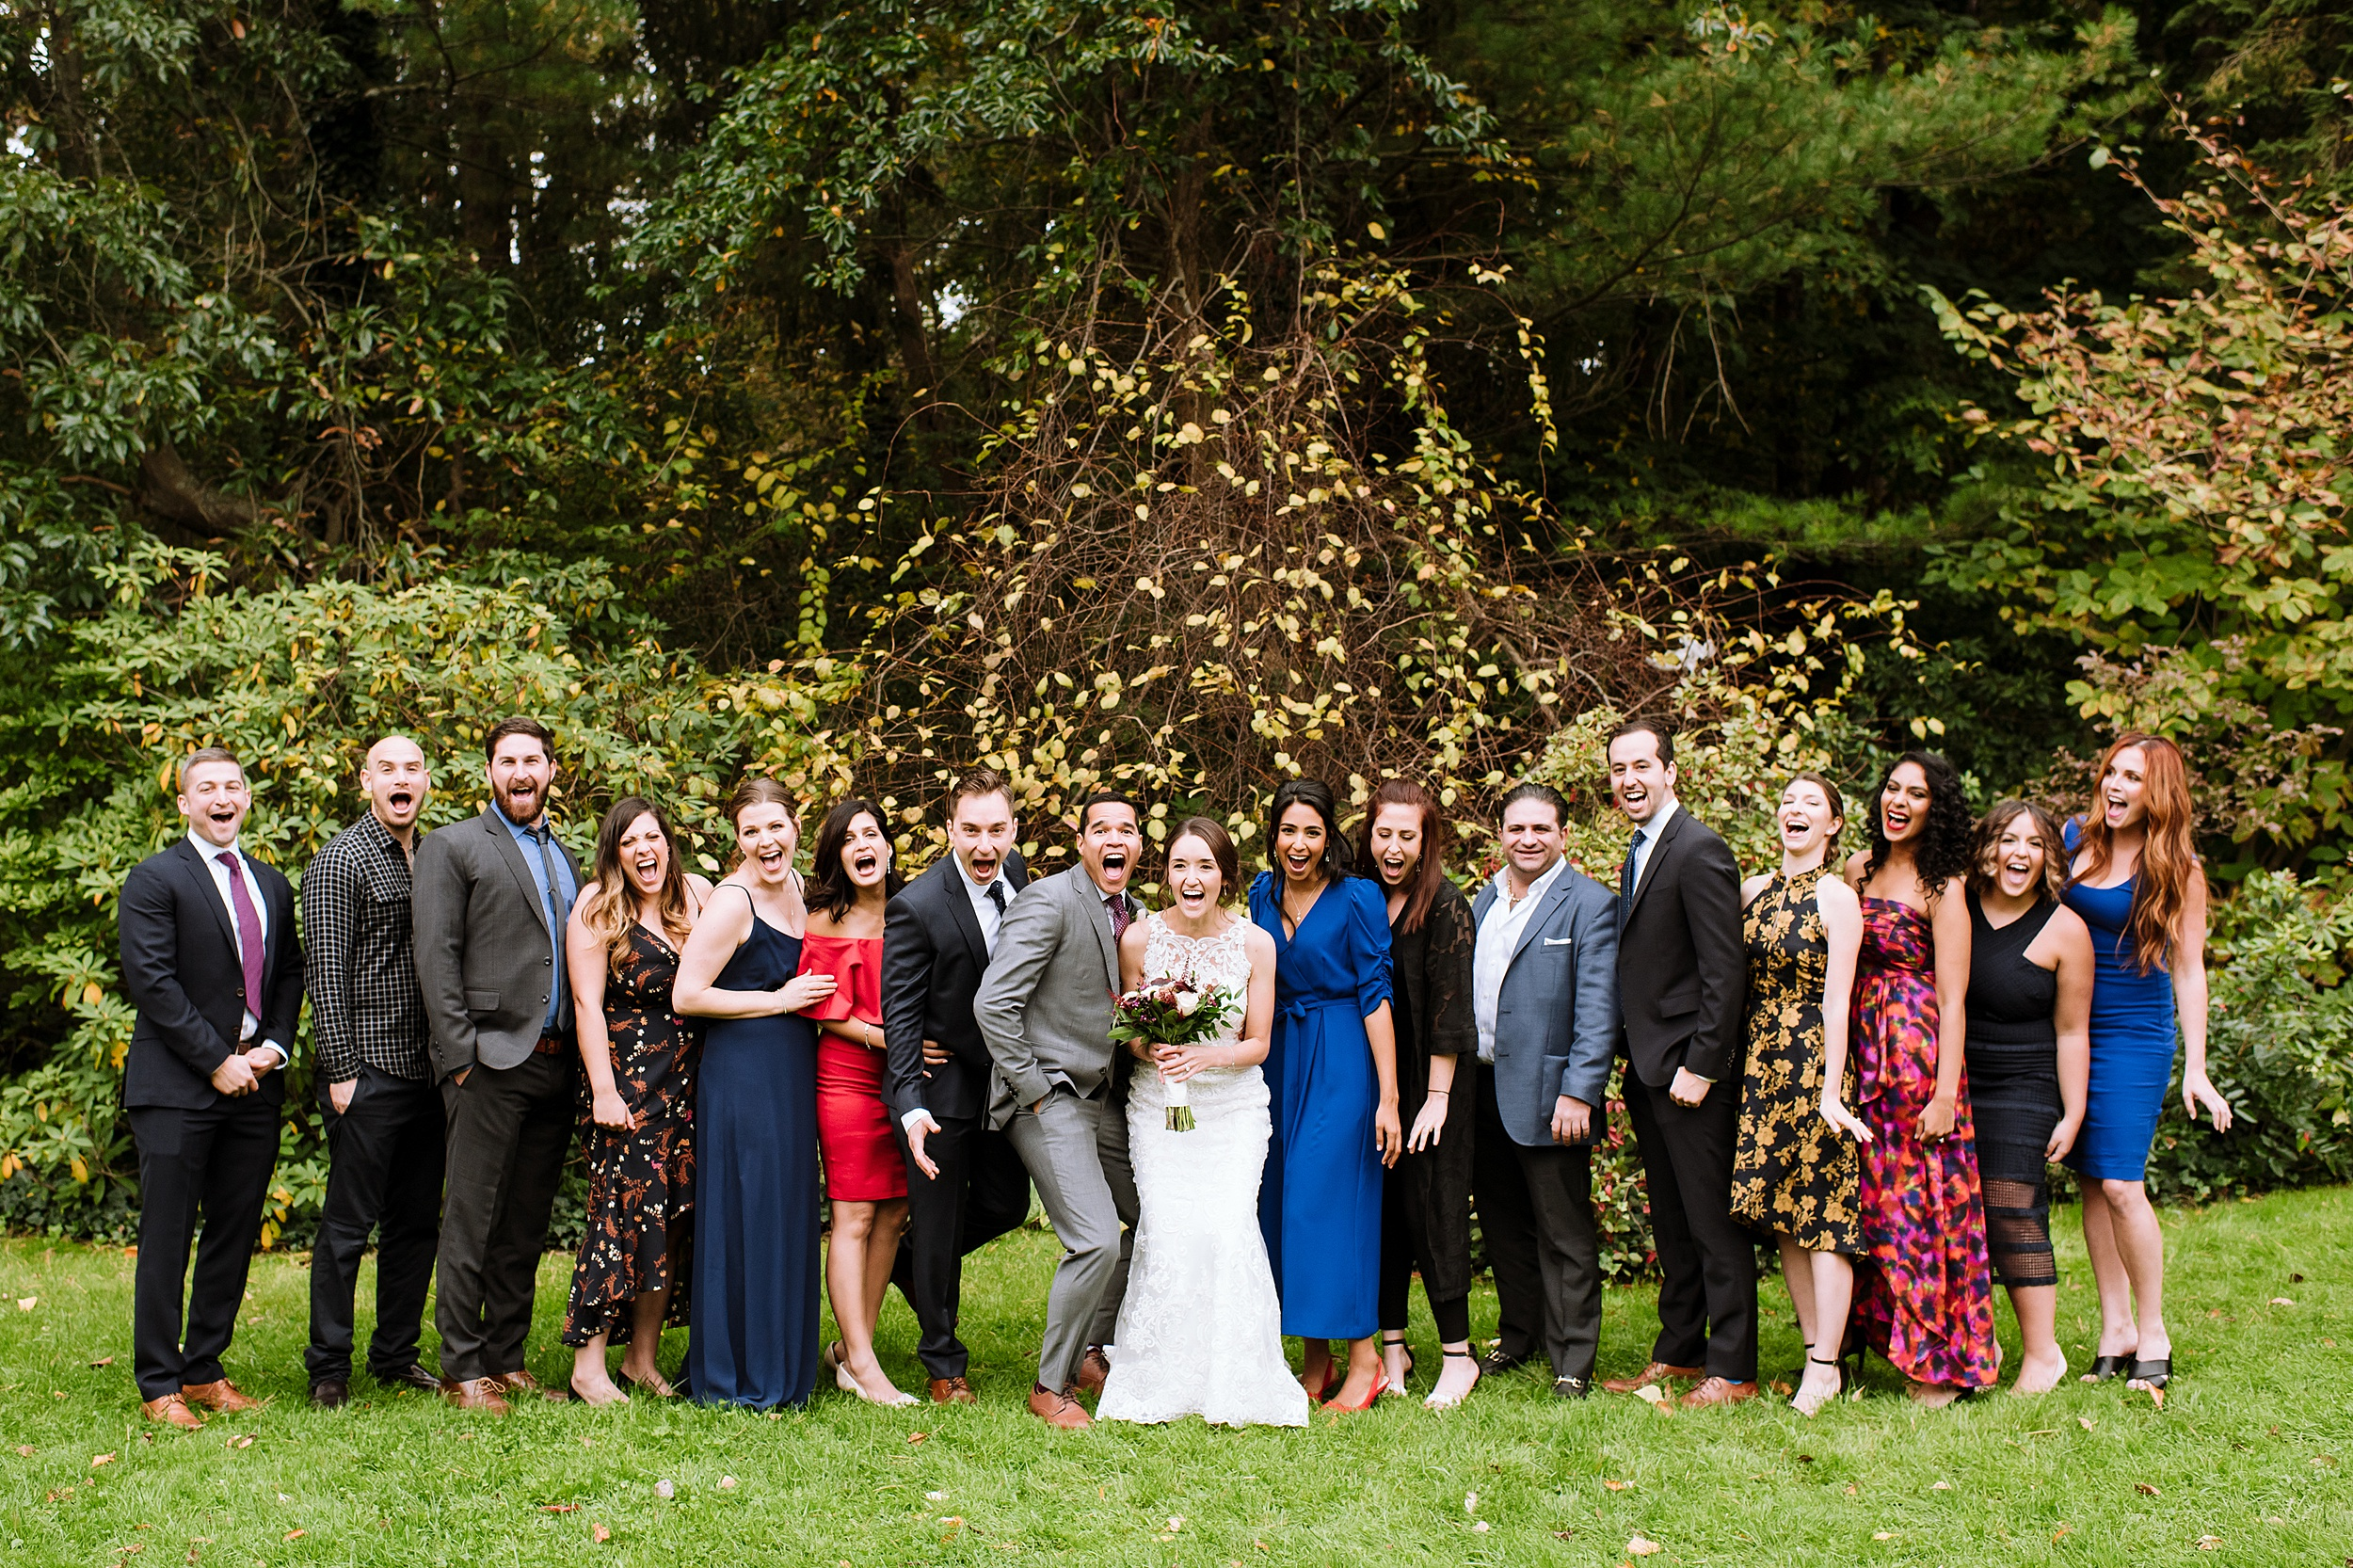 Toronto_Wedding_Photographer_Edwards_Gardens_0067.jpg